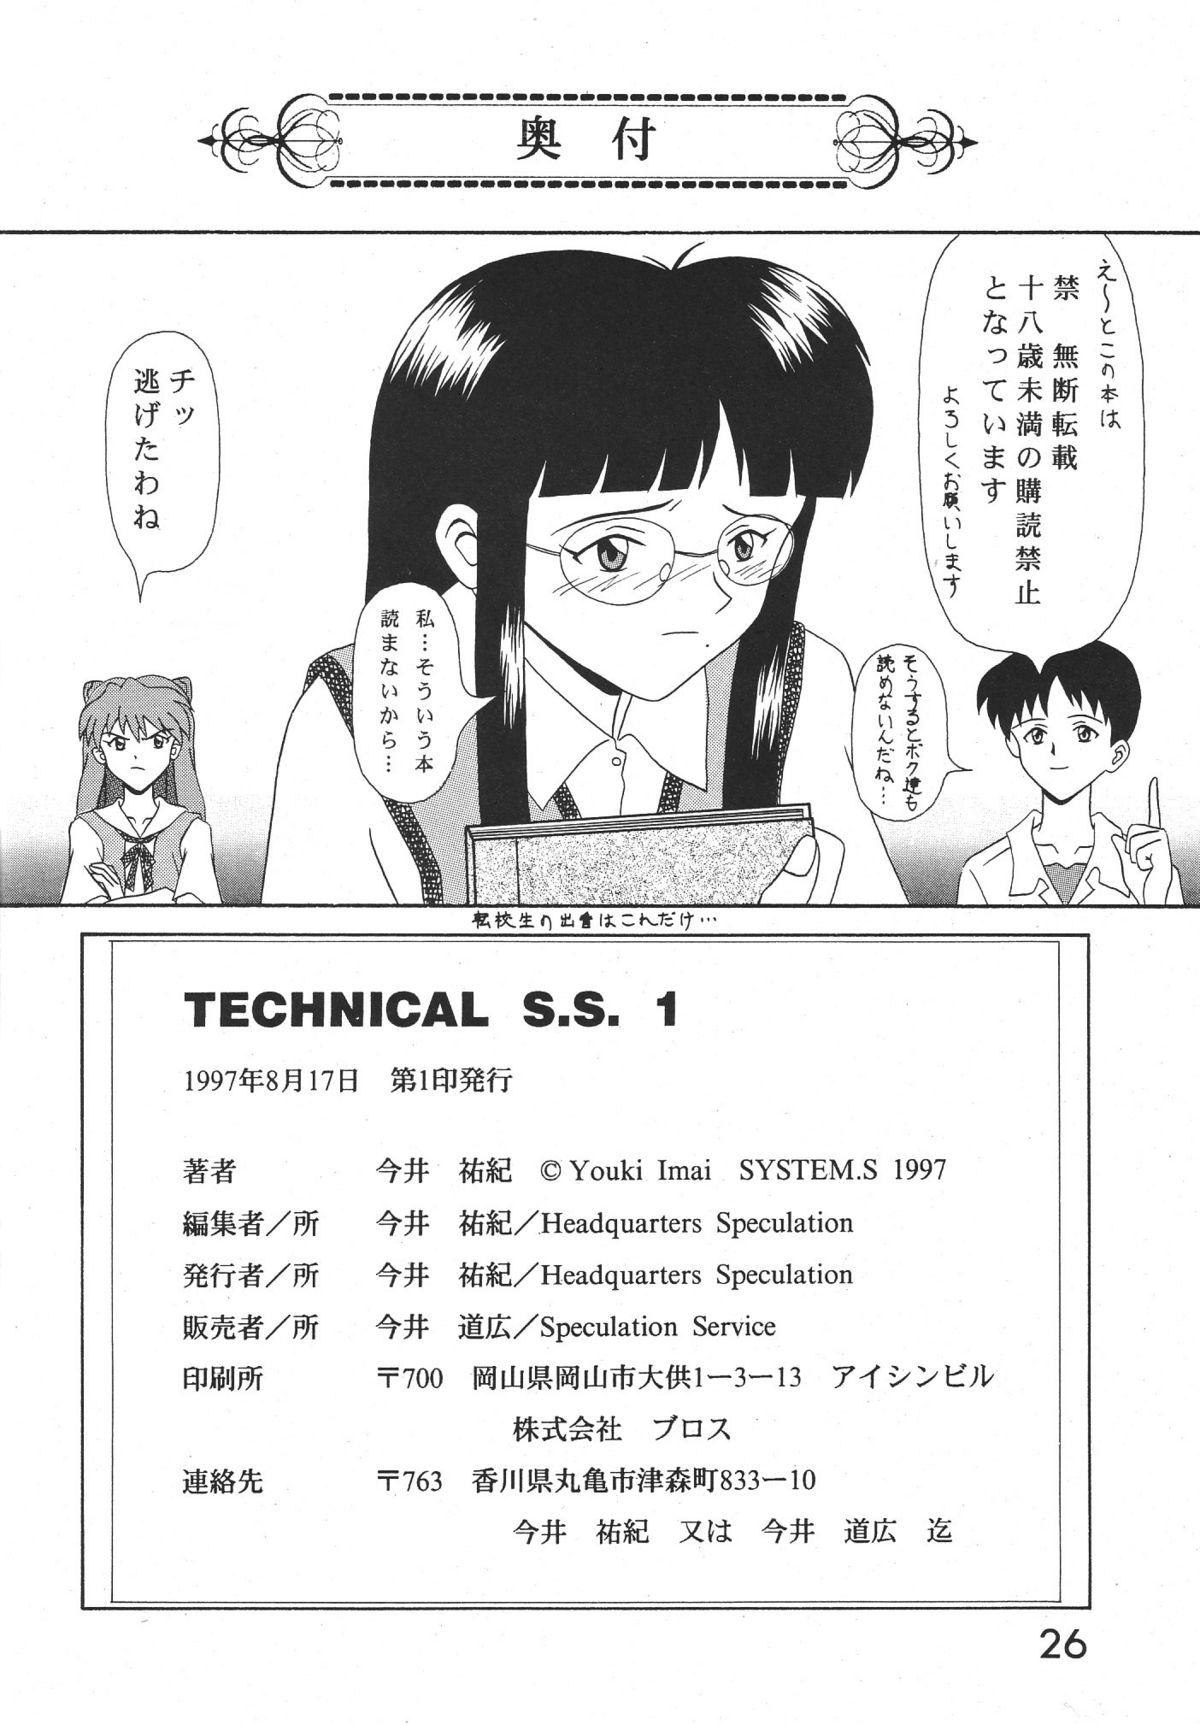 TECHNICAL S.S. 1 2nd Impression 26